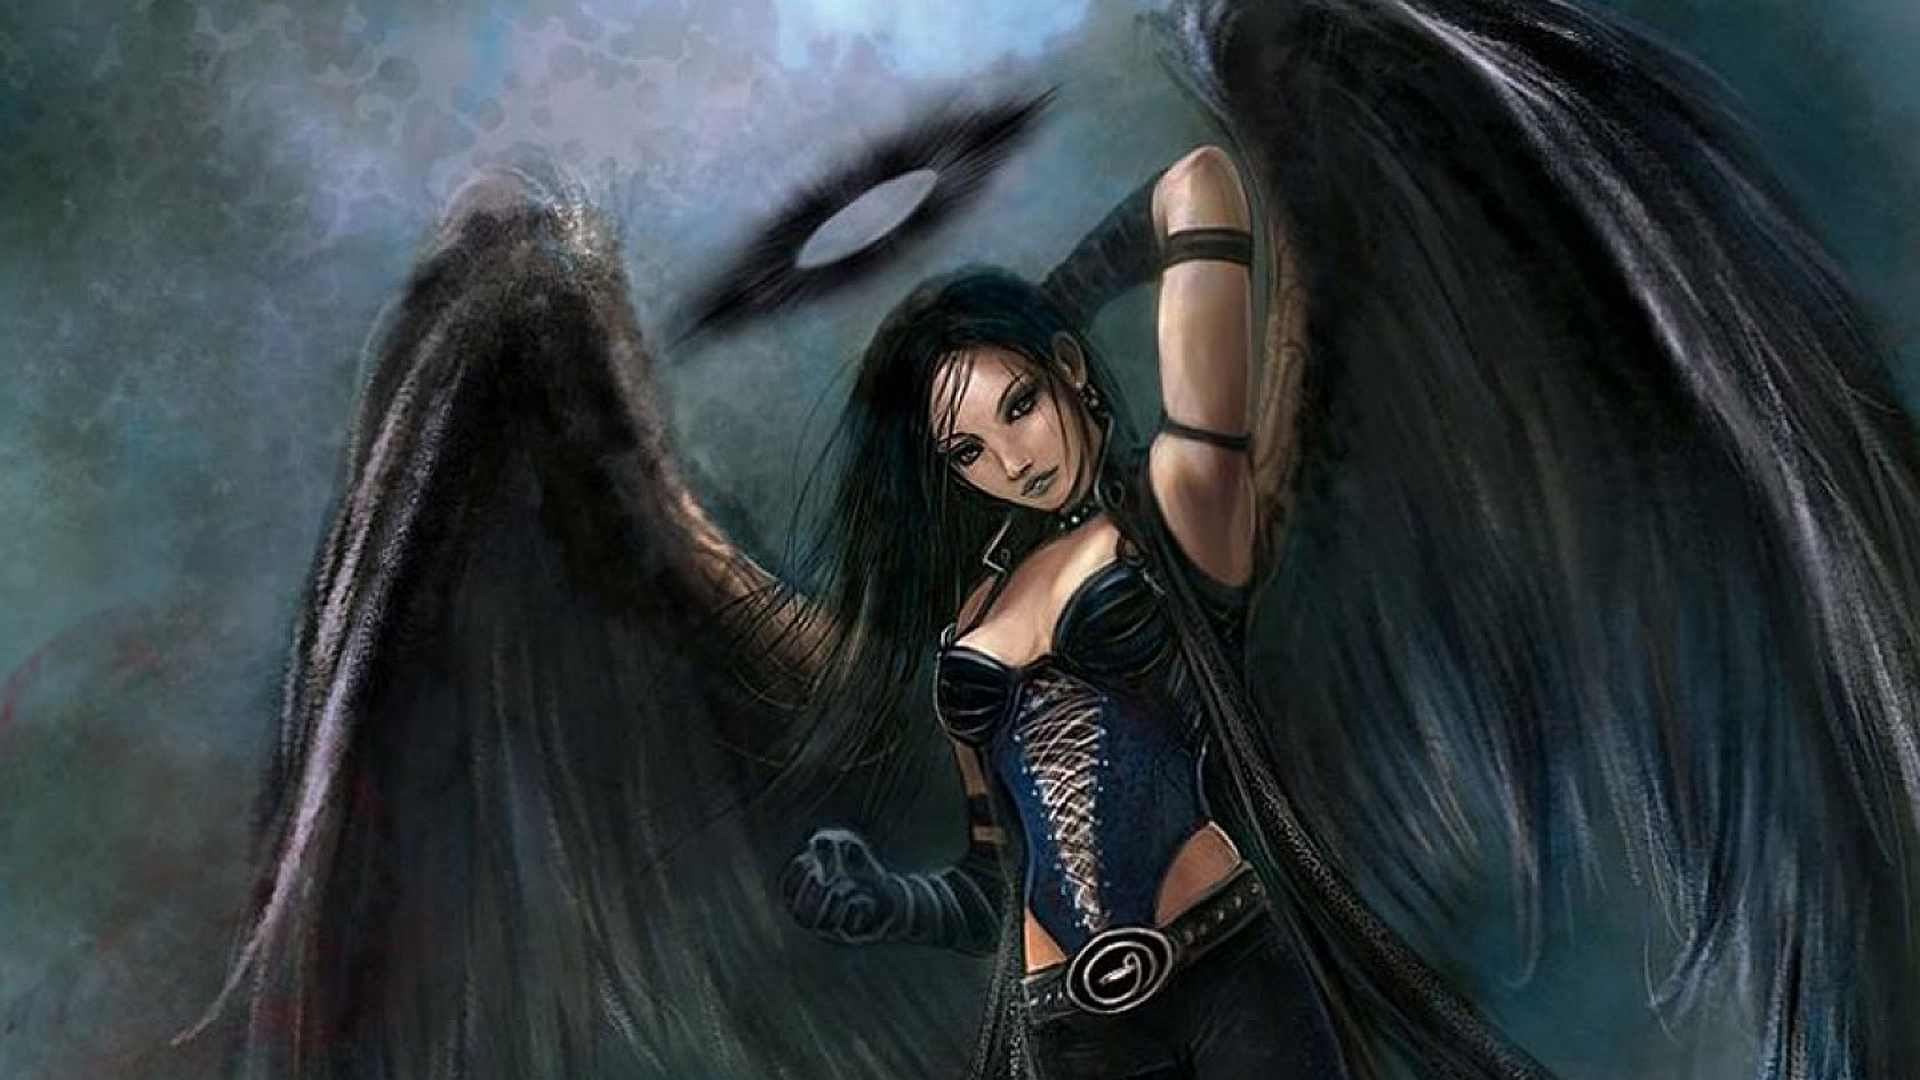 Anime Dark Angel Girl 10 Widescreen Wallpaper Animewp Com